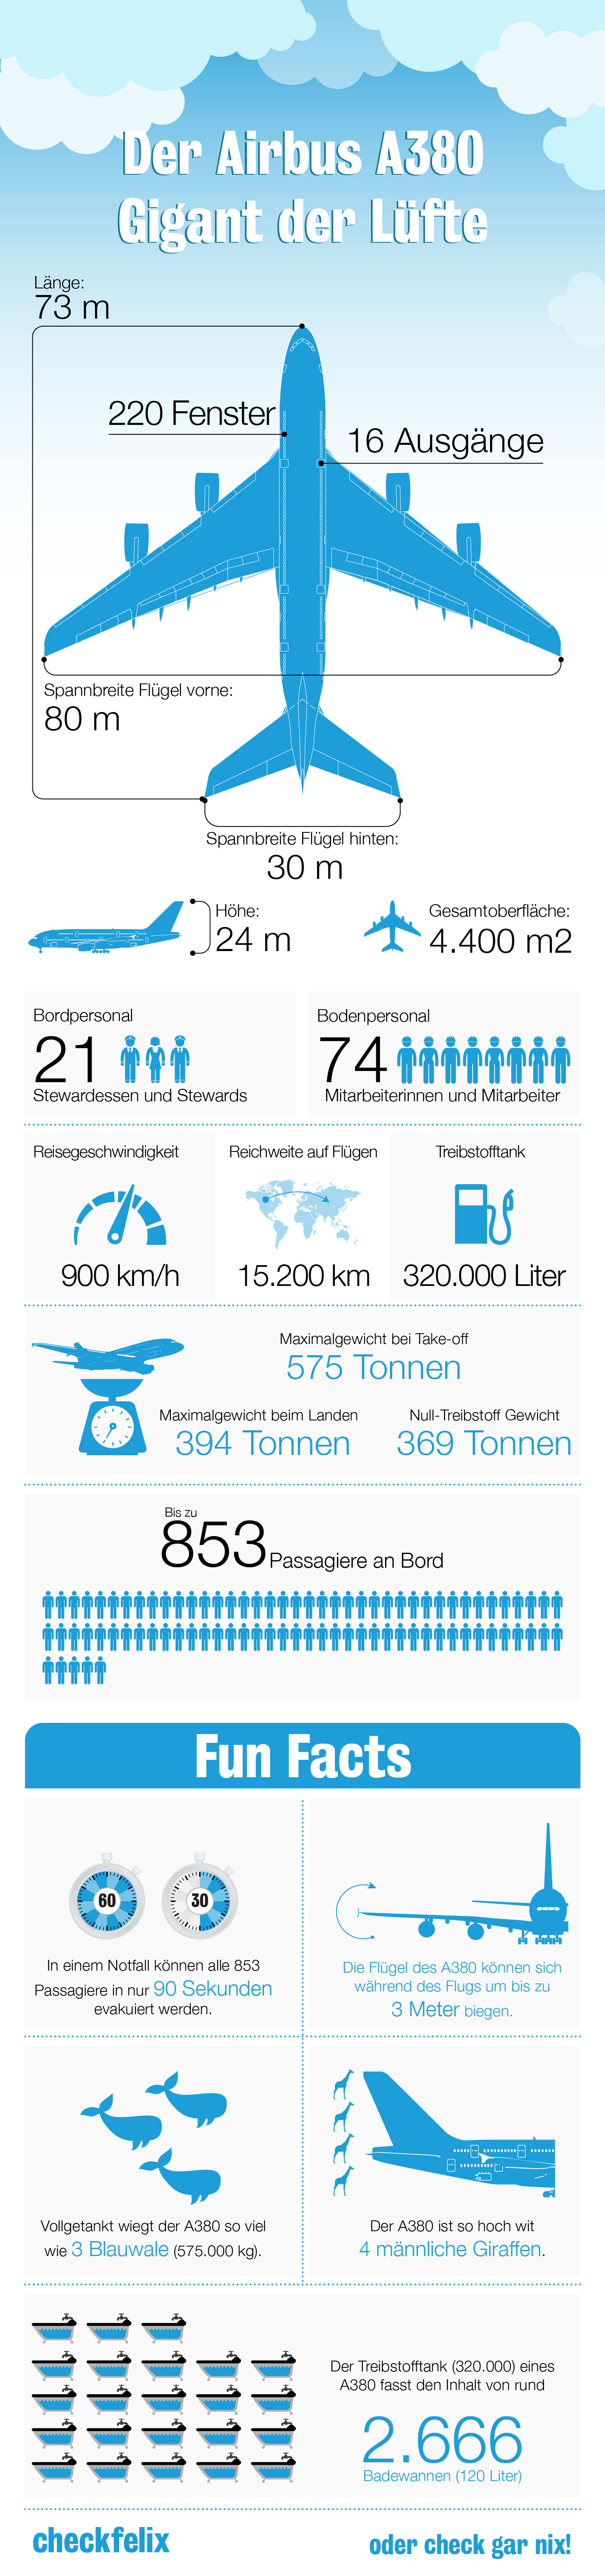 a380-facts_v3_1 (2)